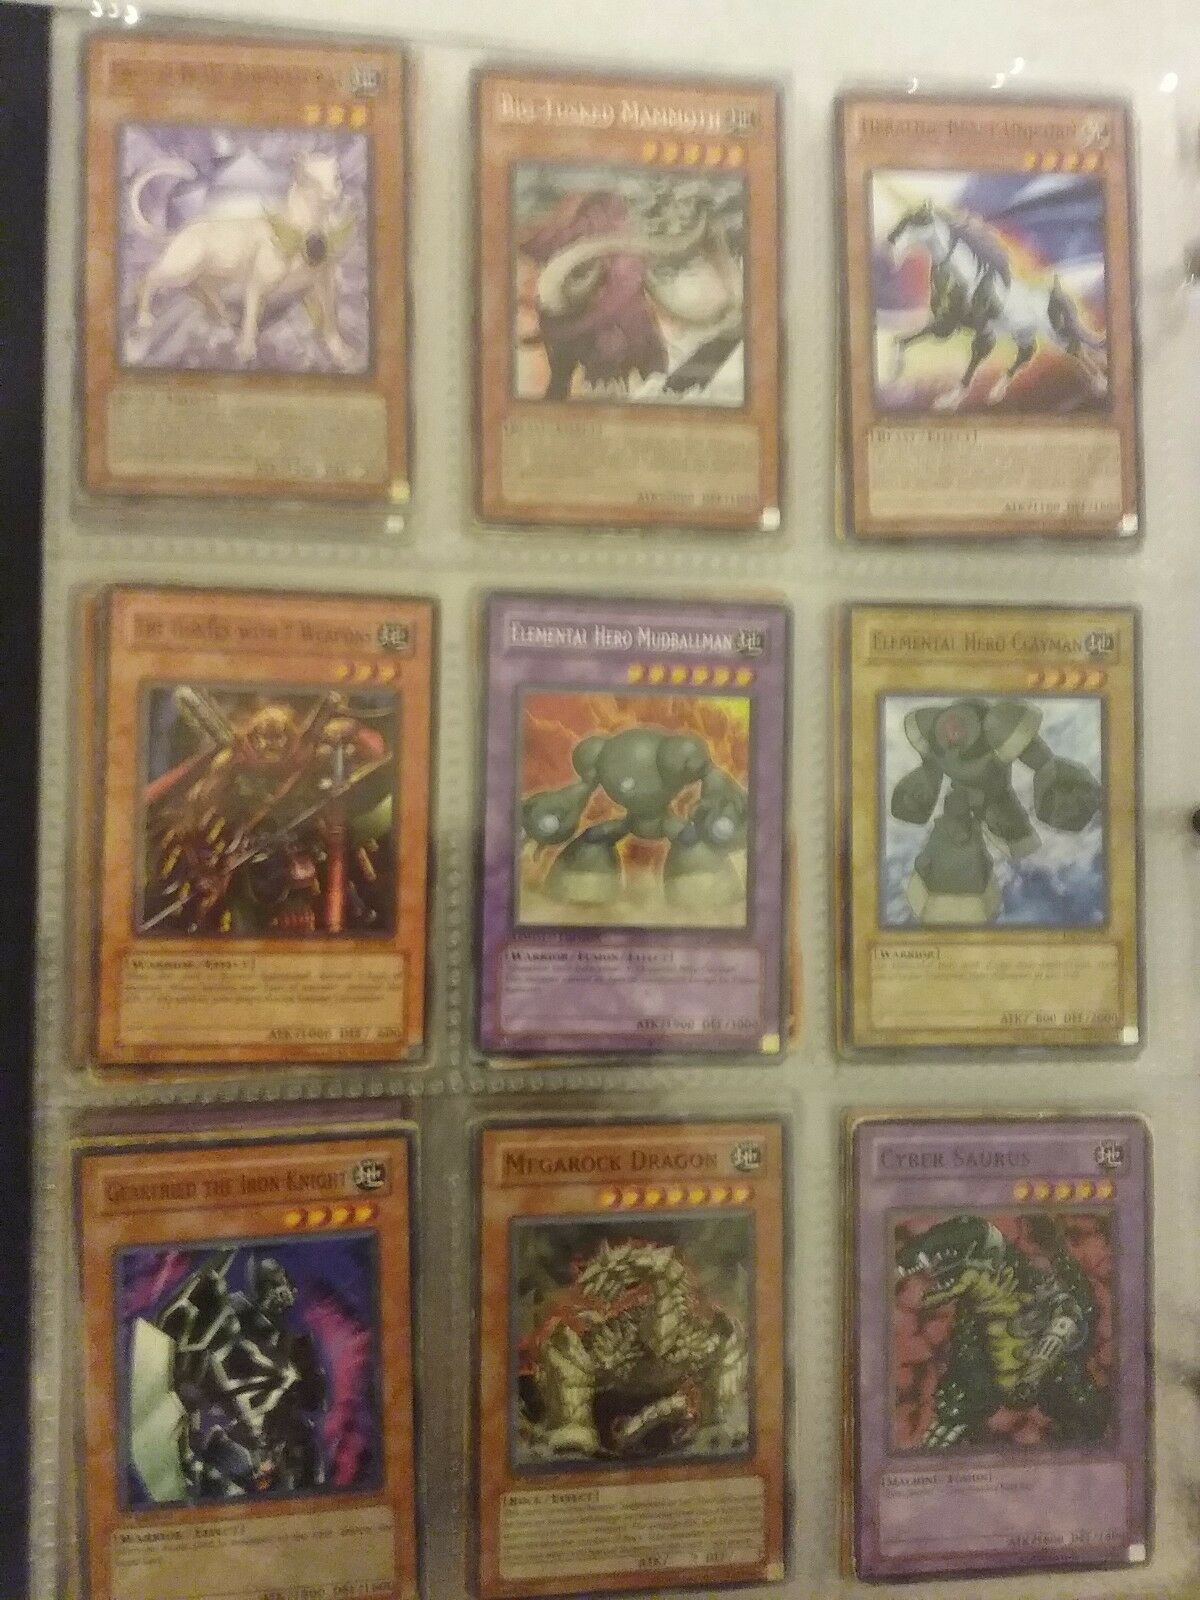 A binder lot of of of 600+  yugioh cards. Commons,rares, super rares, secret rares. 8f0bd6